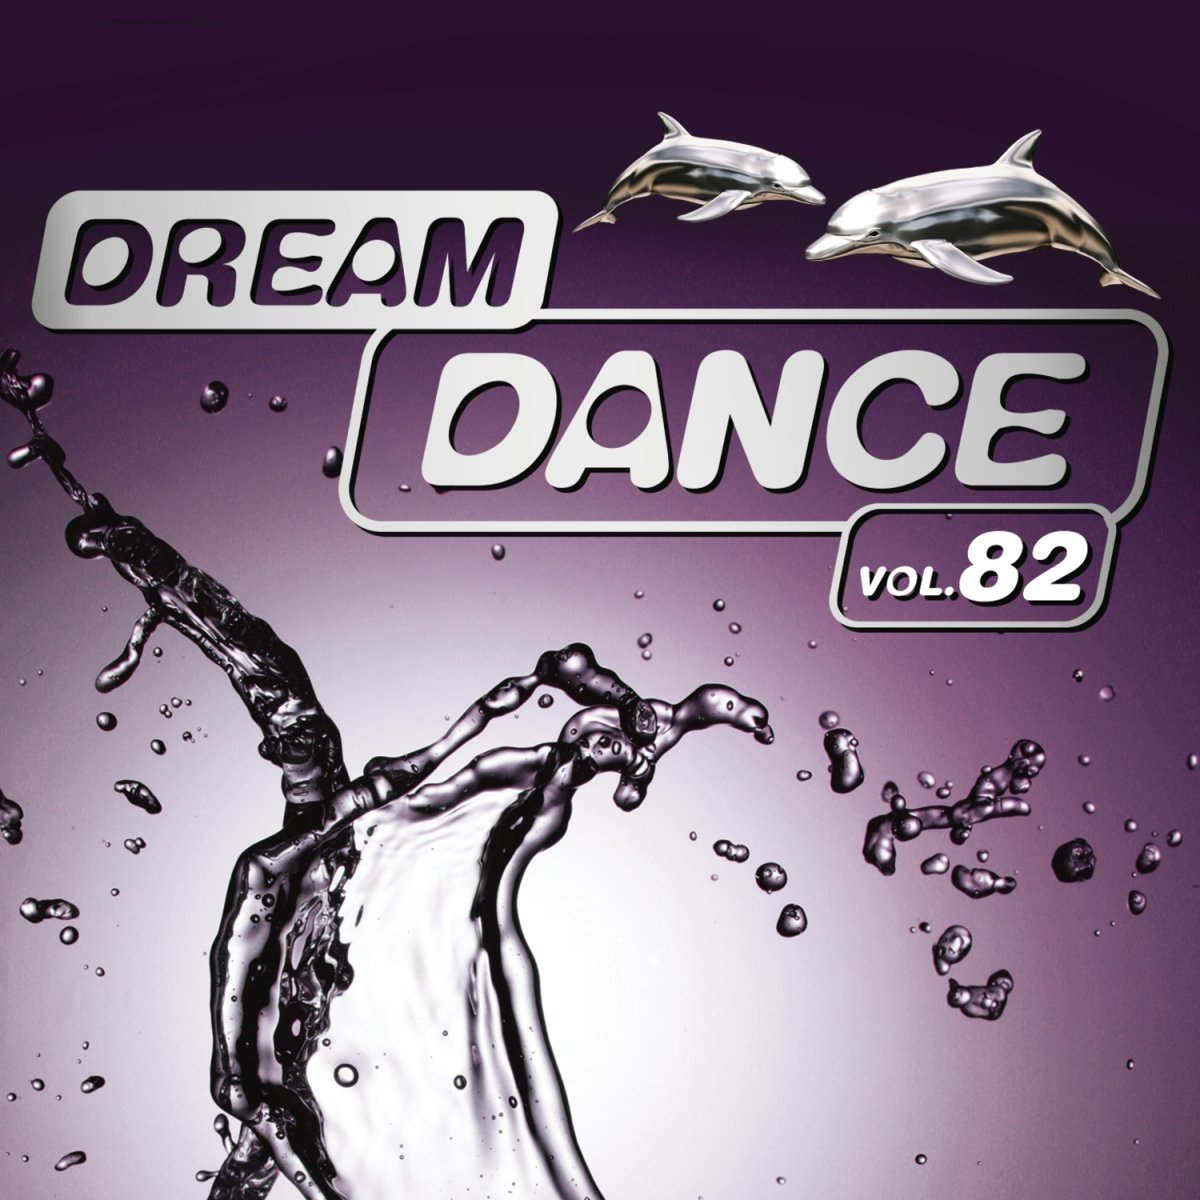 VA - Dream Dance Vol. 82 - REAL PROPER - 3CD - FLAC - 2017 - VOLDiES Download